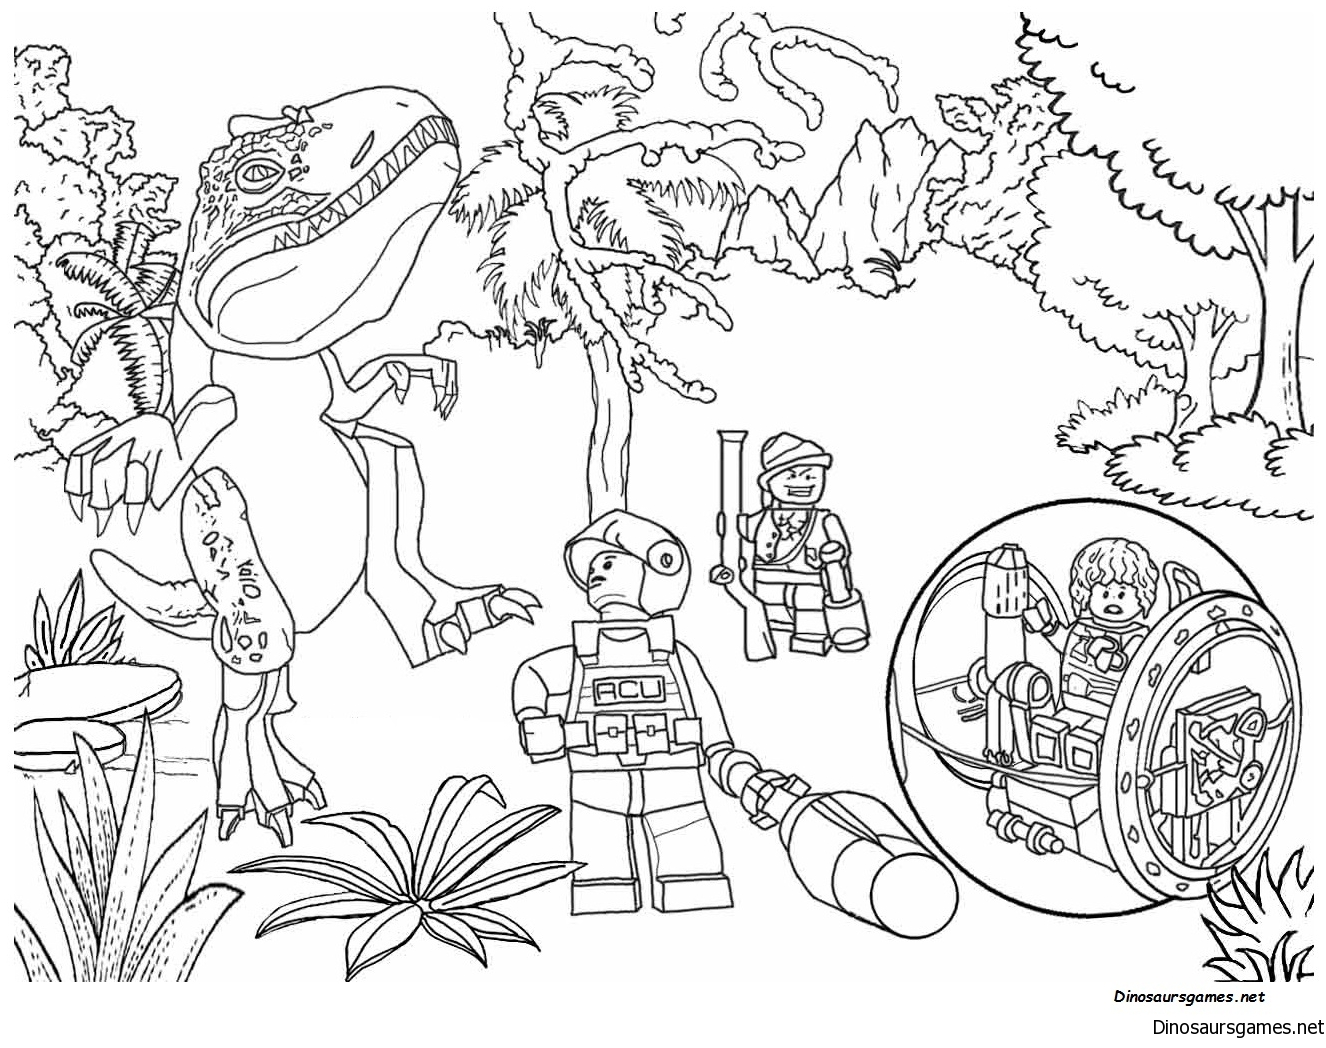 Jurassic Park 5 Coloring Page